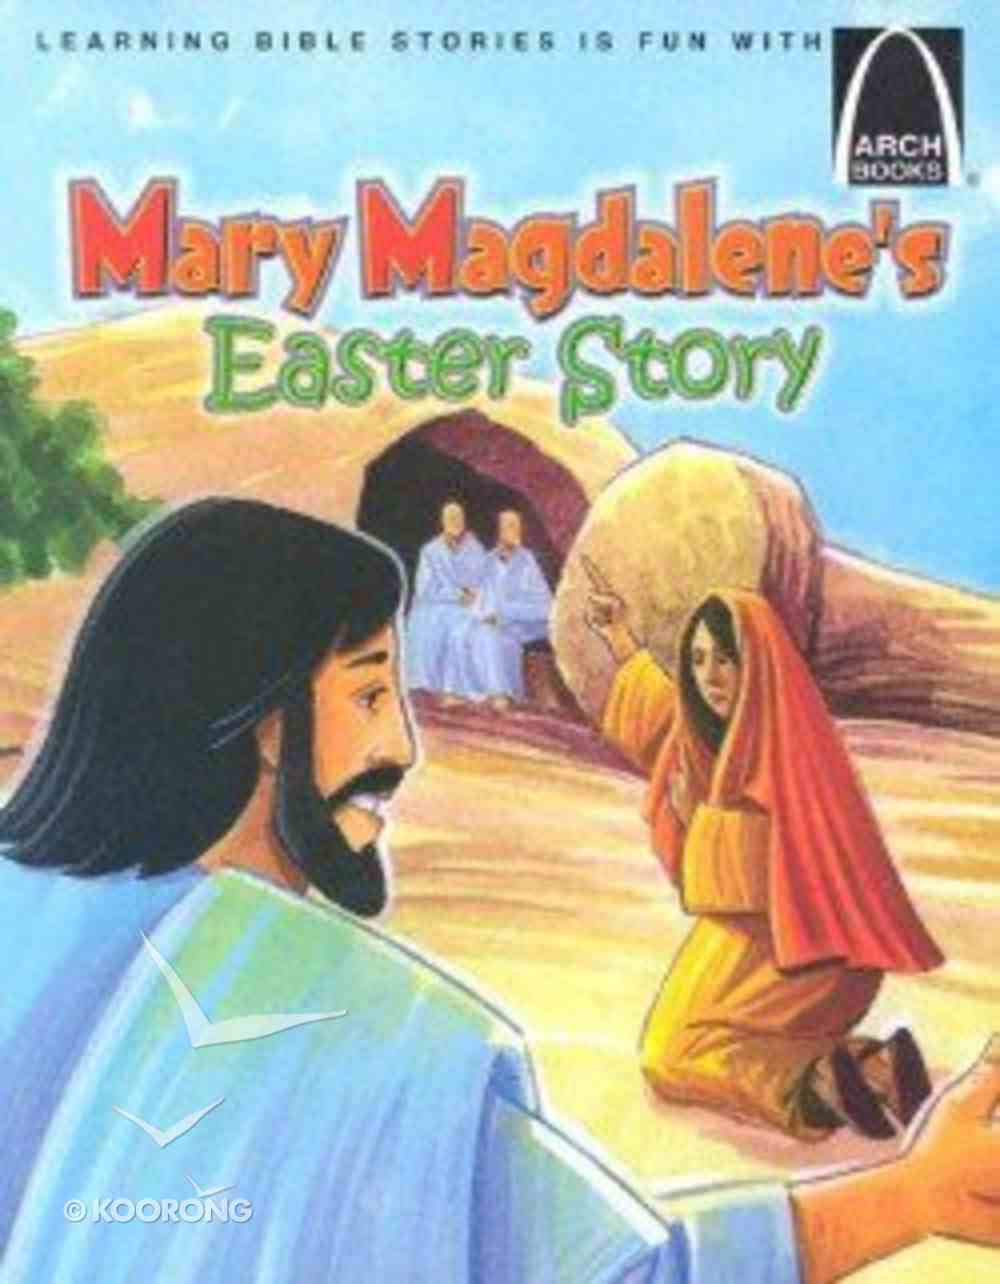 Mary Magdalene's Easter Story (Arch Books Series) Paperback